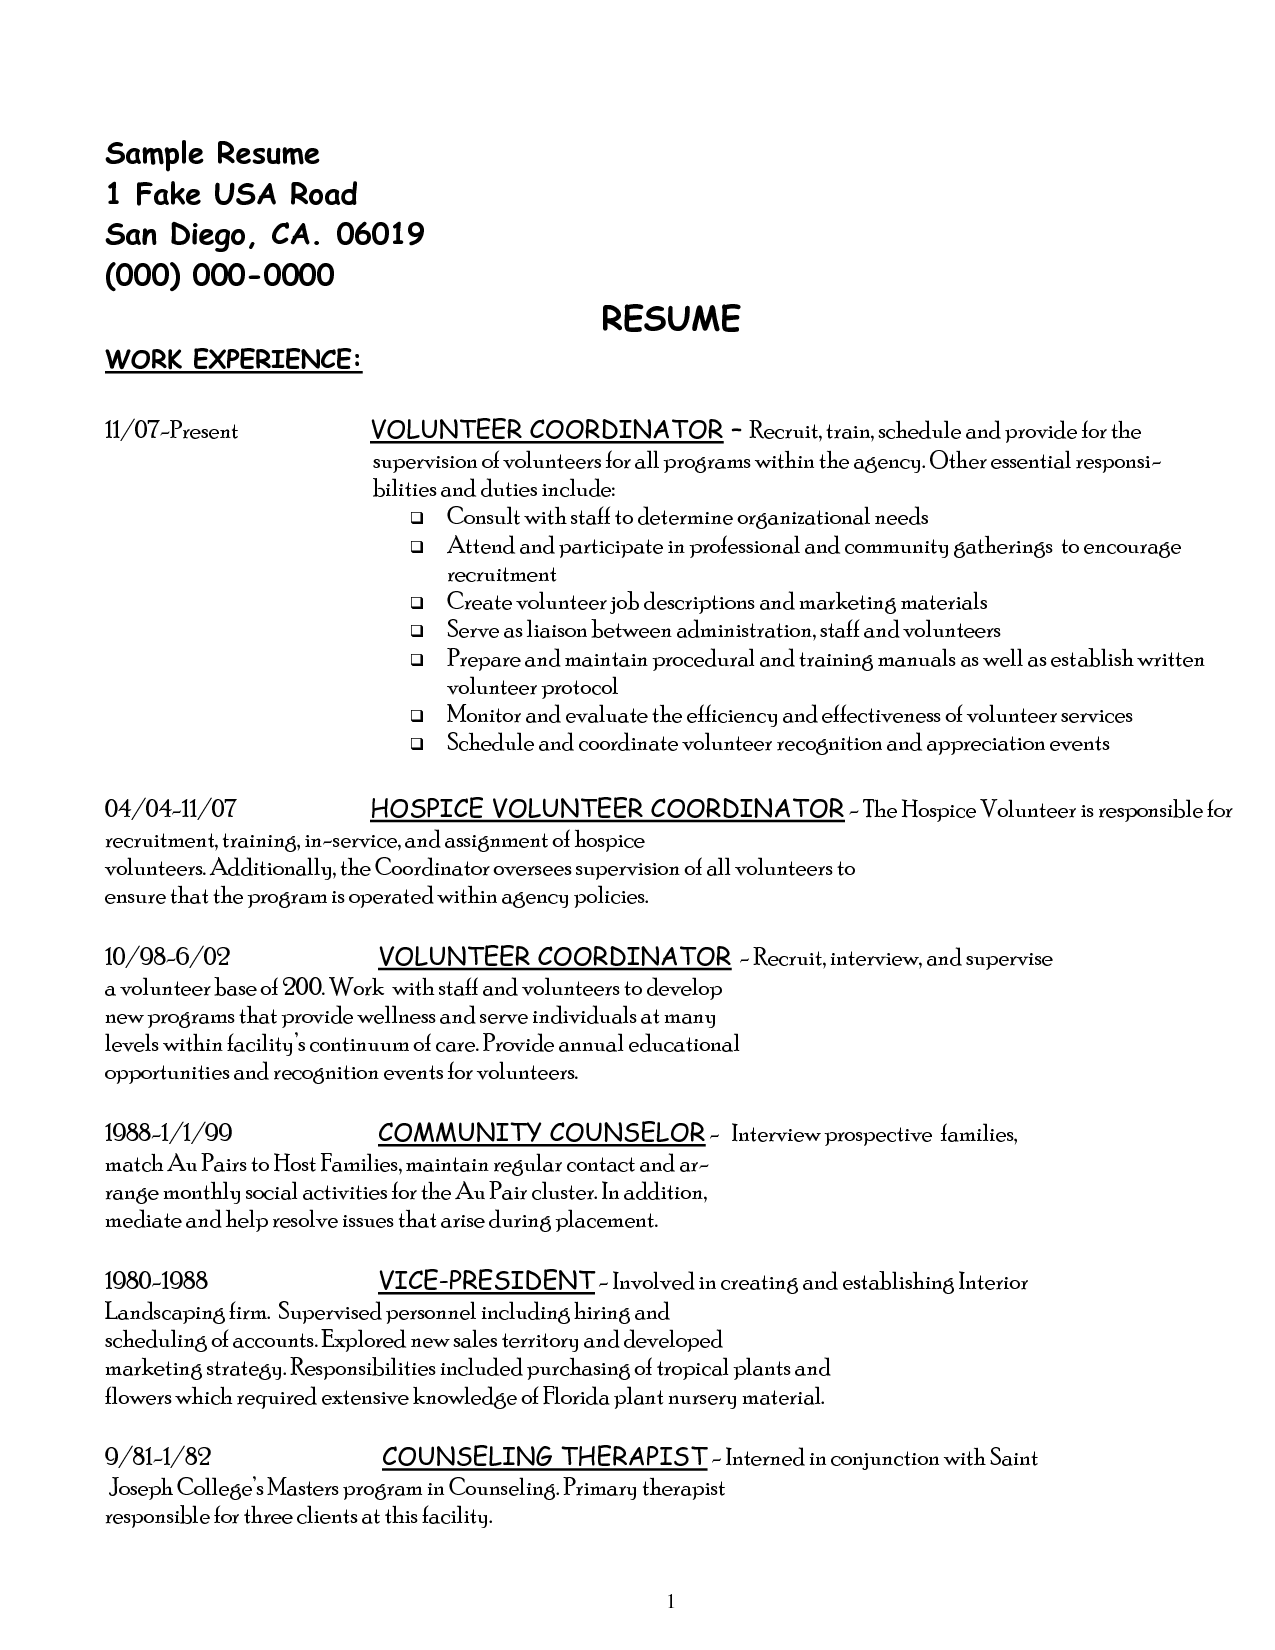 Volunteer Work On Resume Example ImagesVolunteer Resume Business Letter  Sample